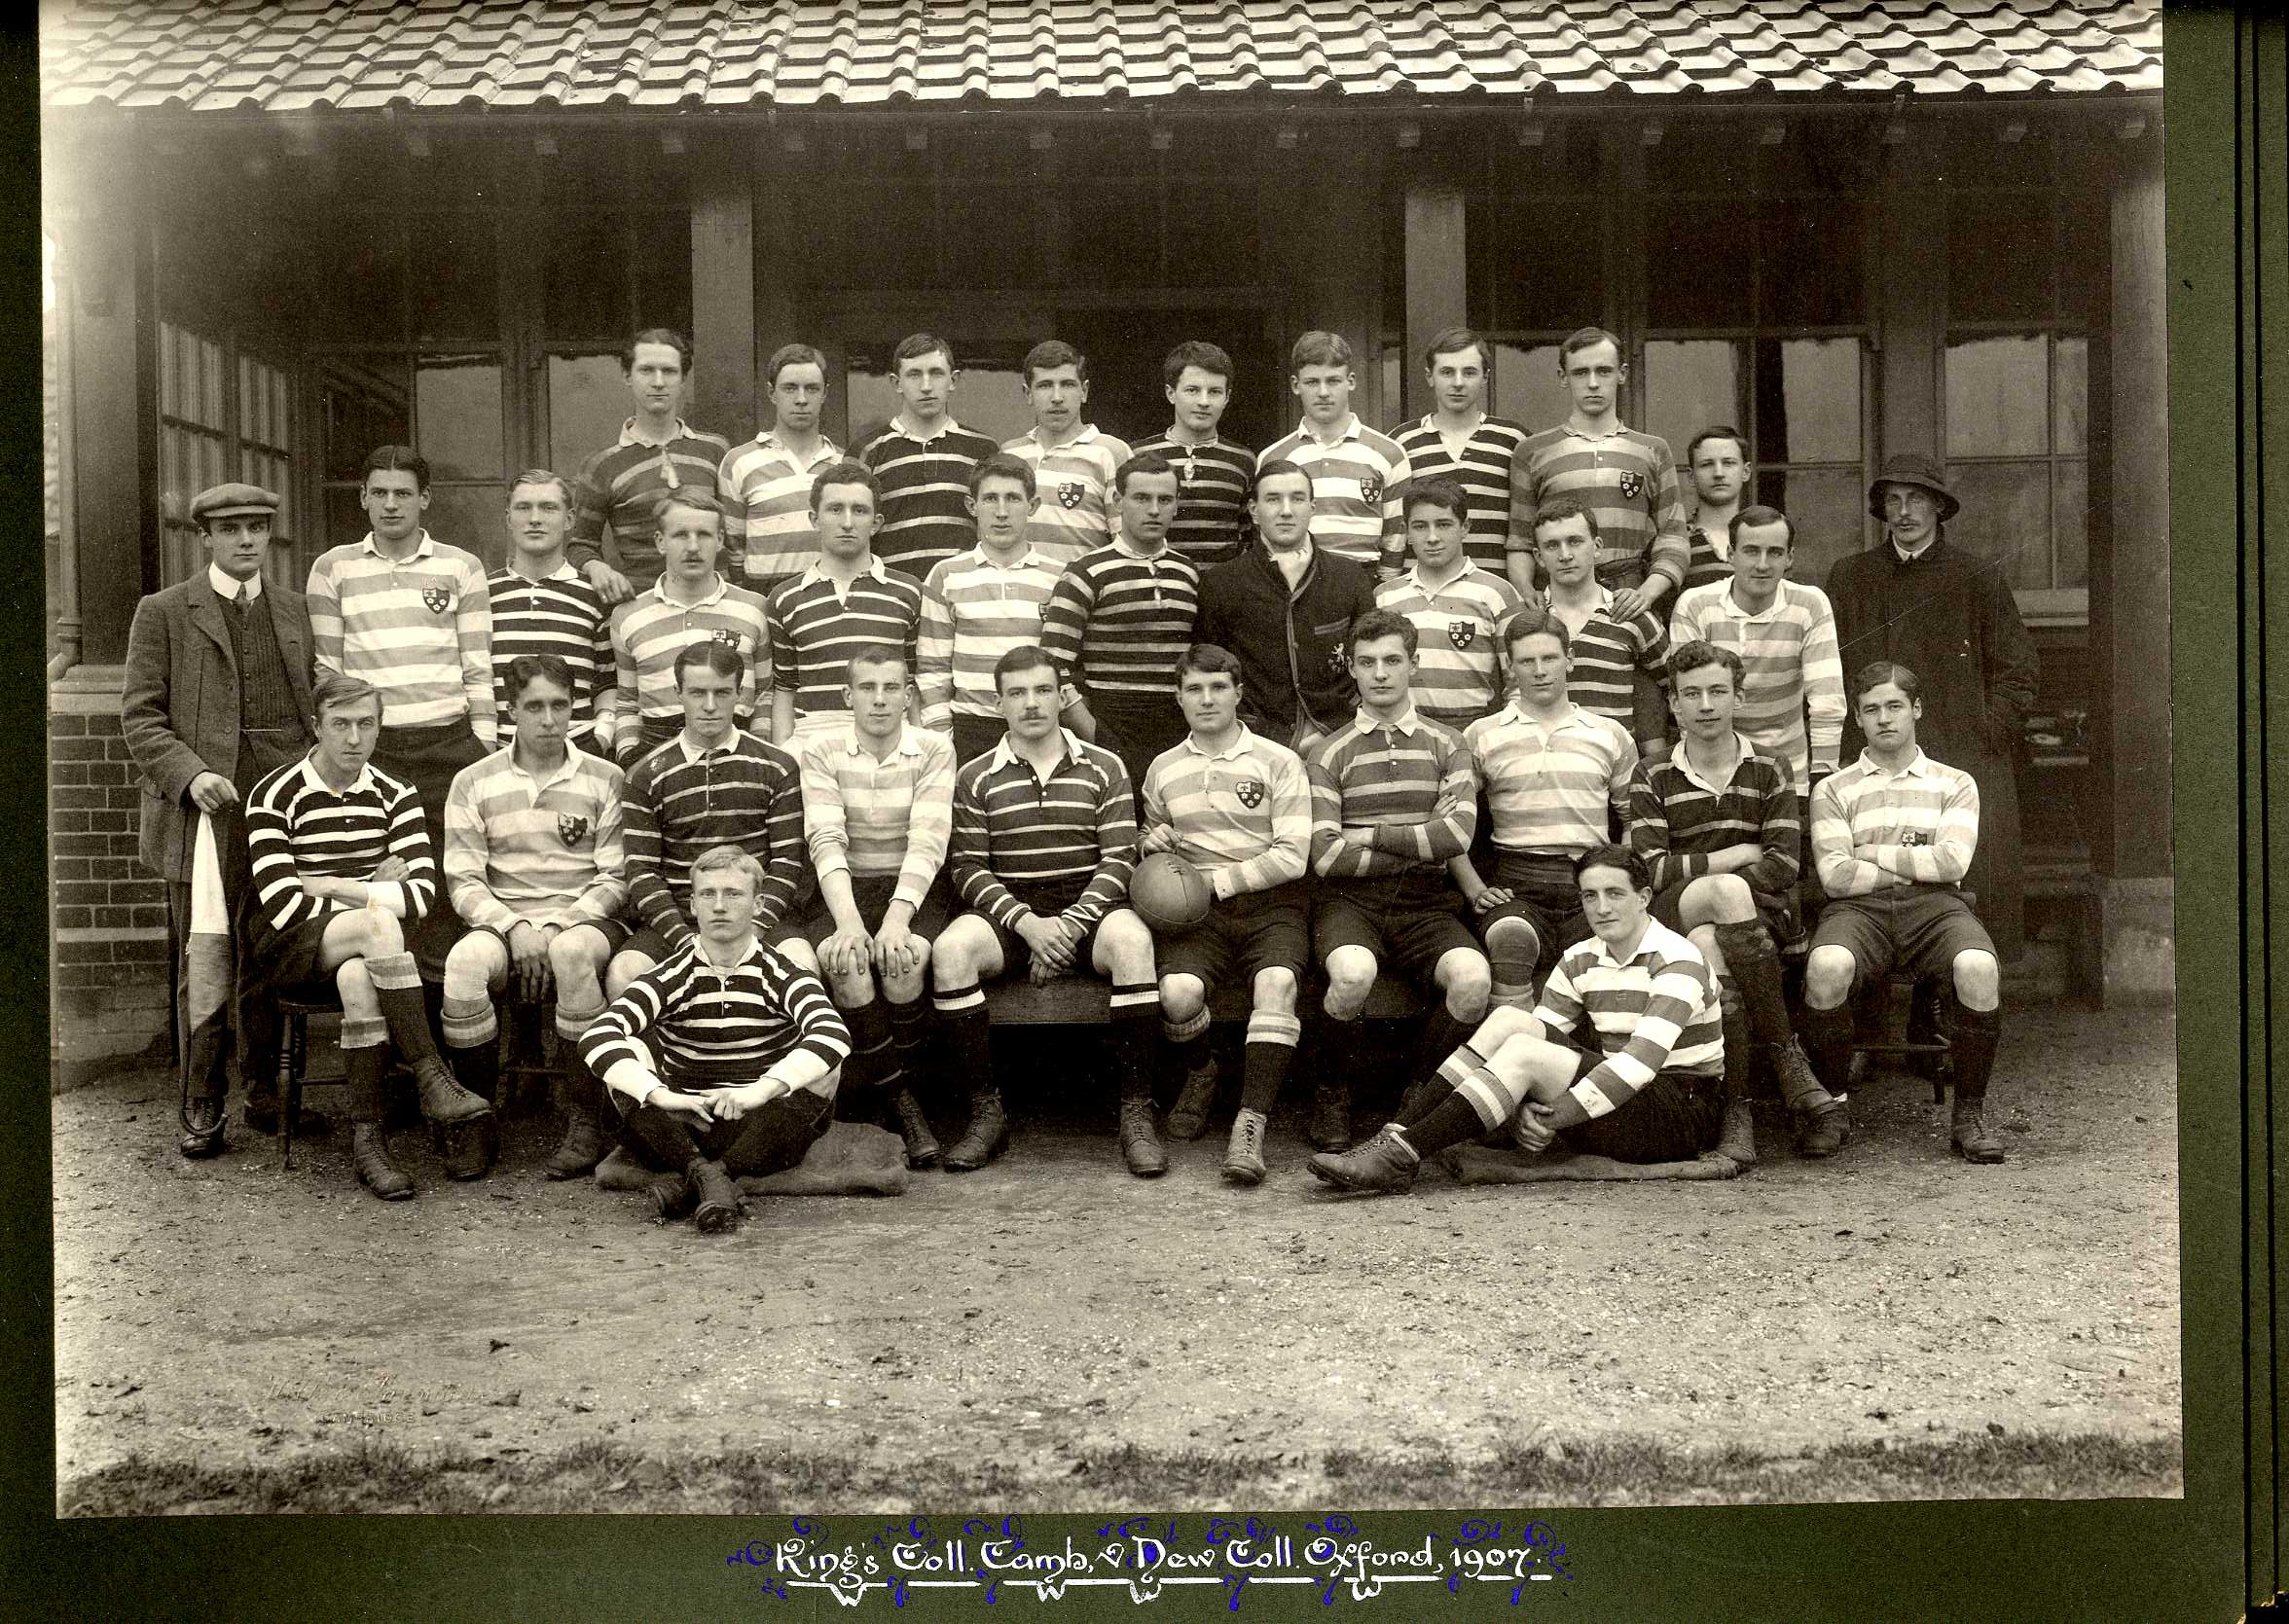 King's College Cambridge [Rugby Football team] vs. New College Oxford, 1906 [KCAC/1/3/6/4/2]